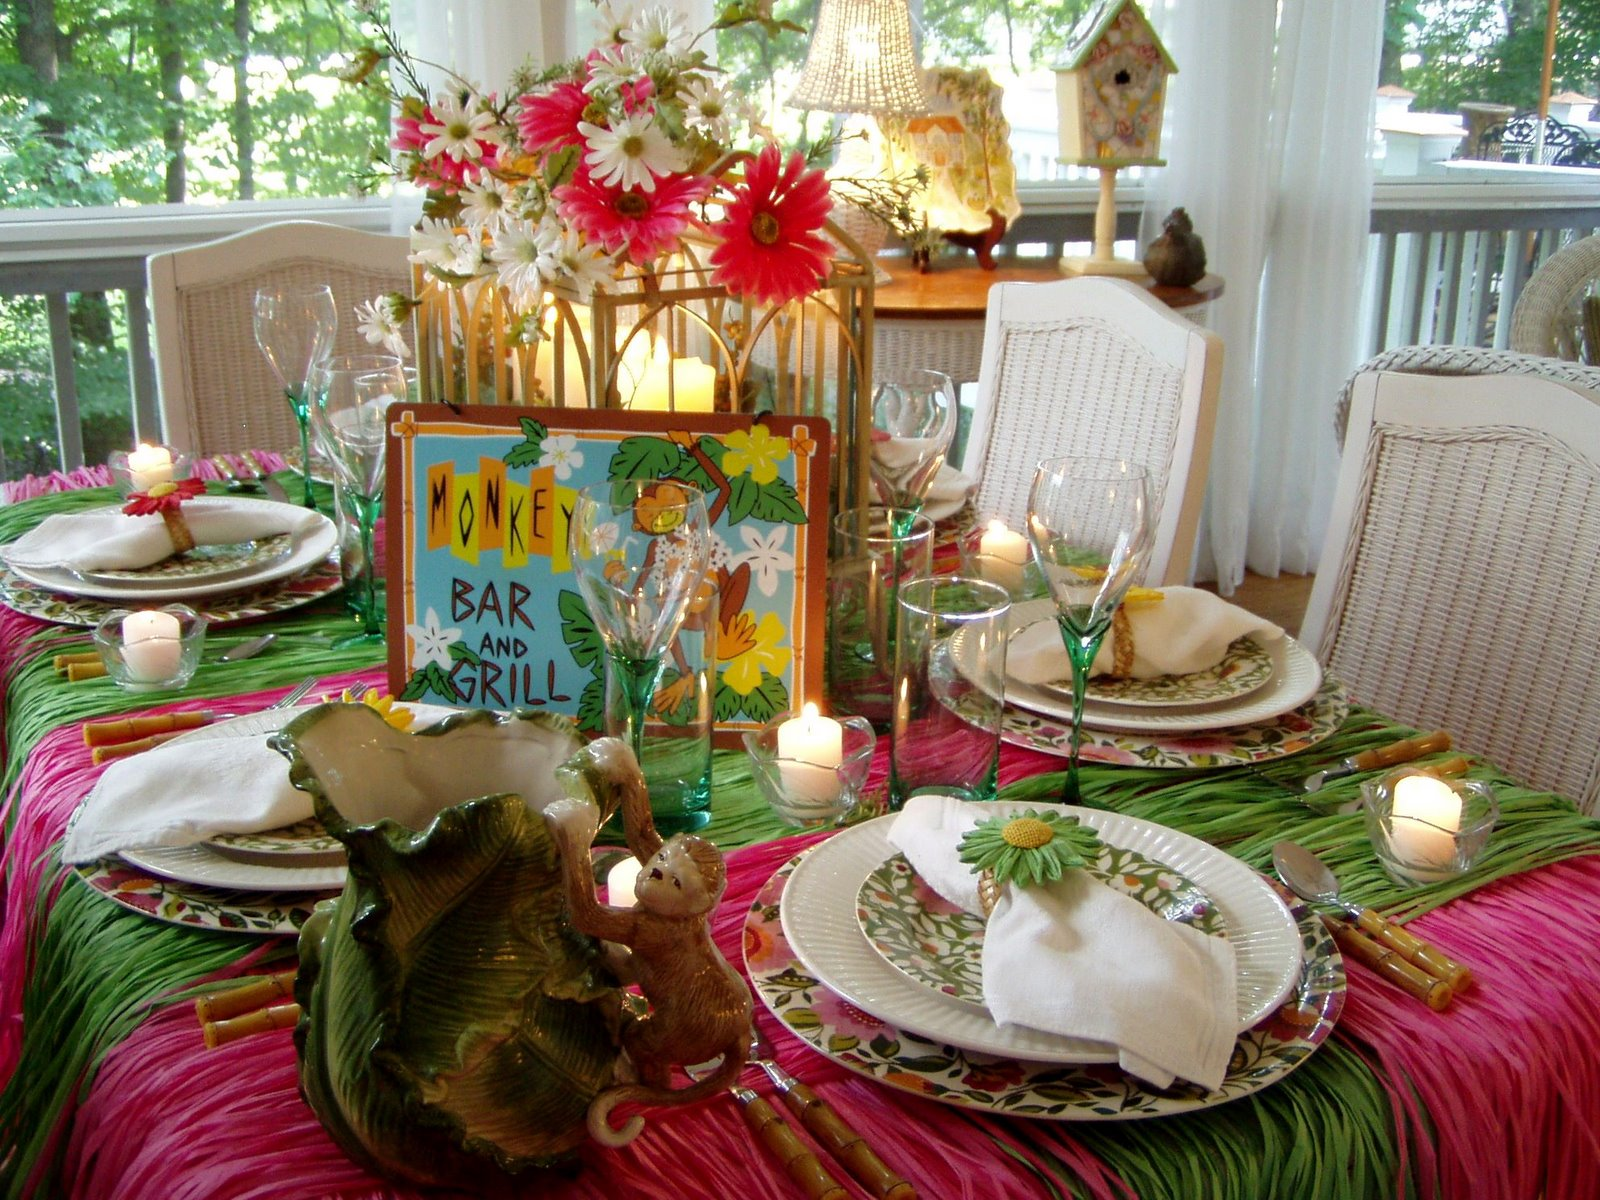 Welcome to the Monkey Bar and Grillu2026your table is right this way! & Hawaiian or Tropical Table Setting Tablescape